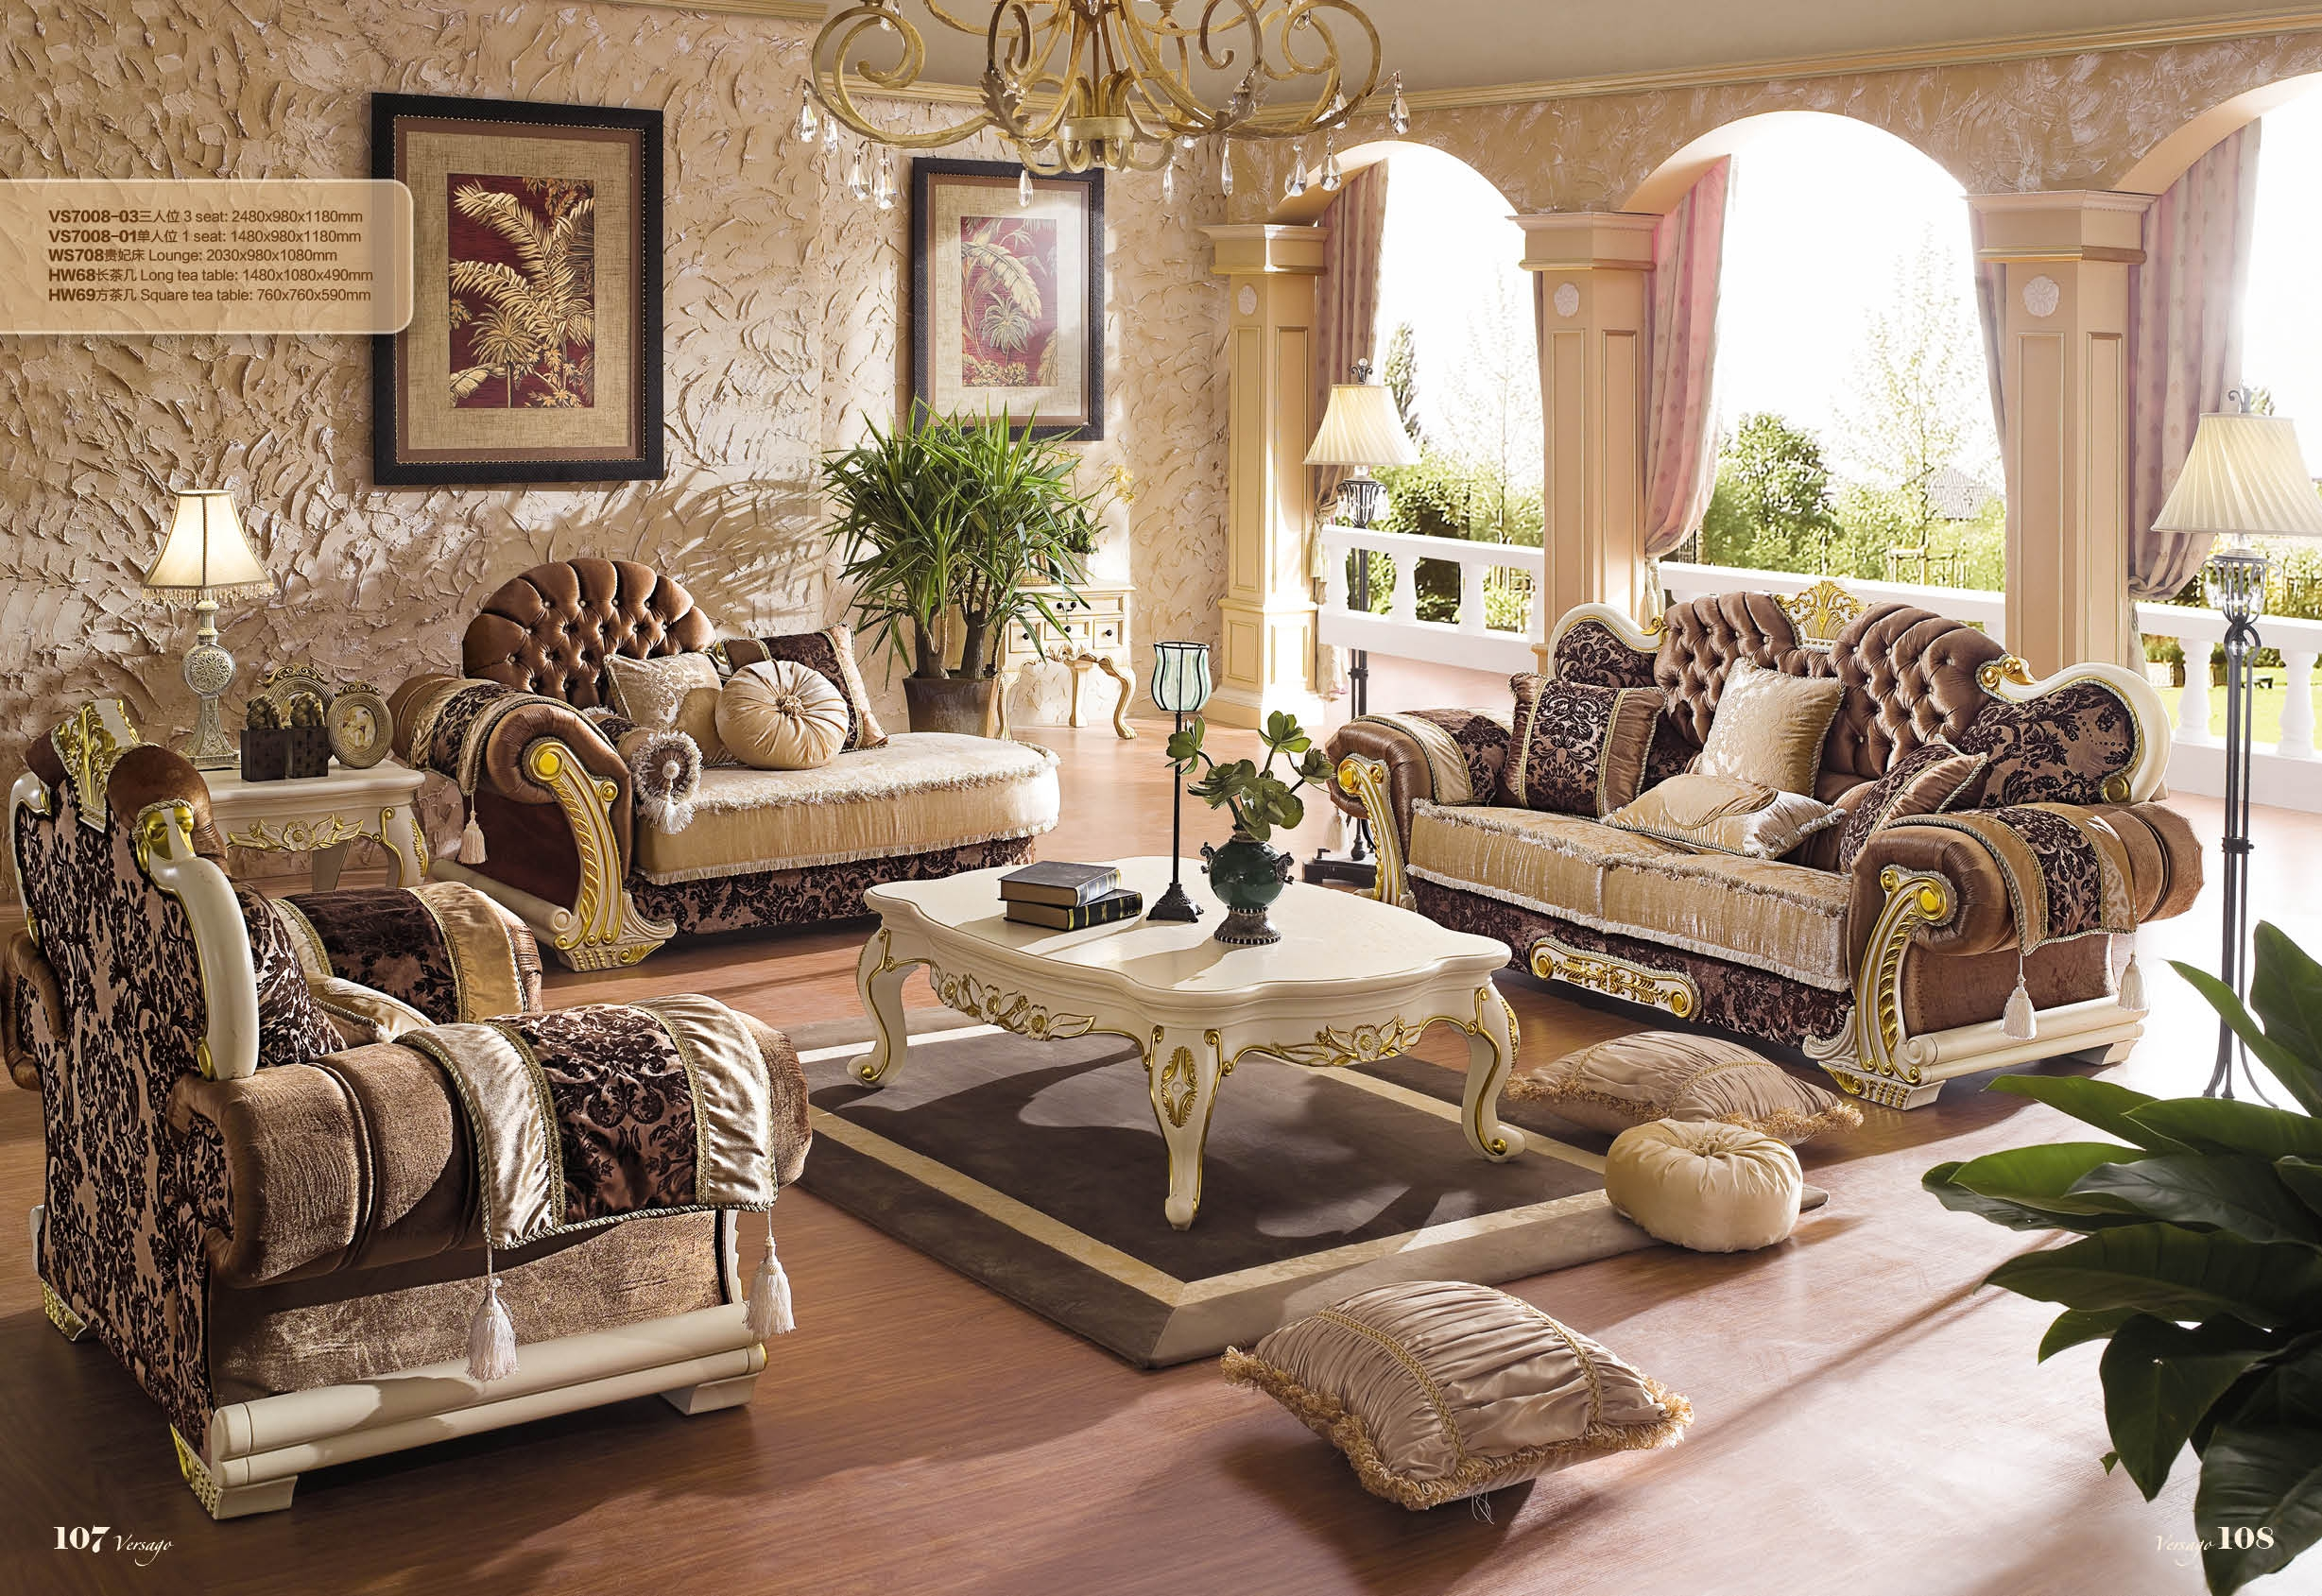 Choose European Style Sofa China Made 2013 China Sofa Factory Direct Regarding European Style Sofas (Image 4 of 15)